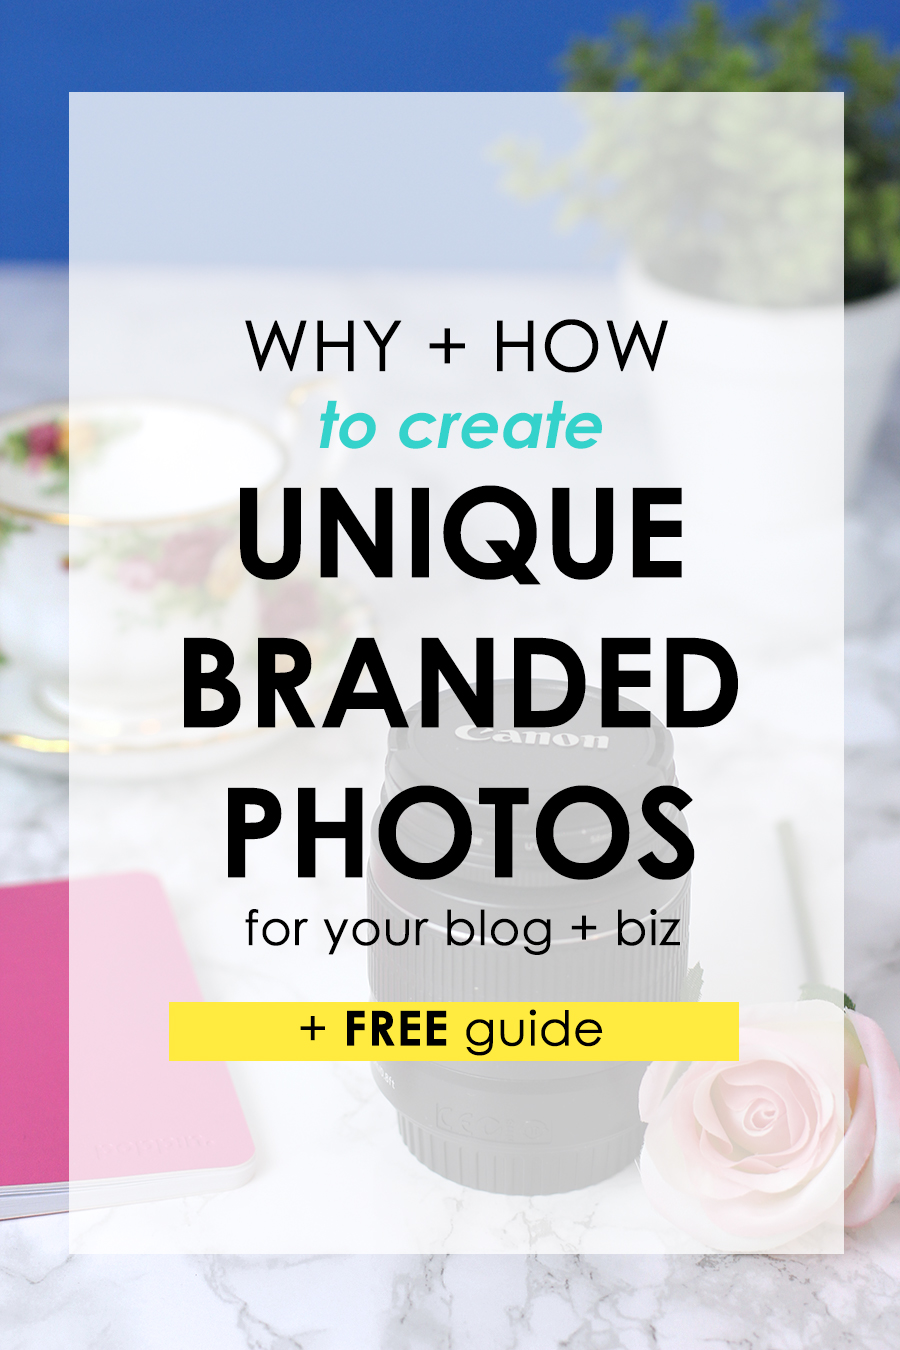 Why + How to Create Unique Branded Photos for your Blog + Biz (+ FREE Guide). Click through to watch 5 exclusive videos with TONS of information on how to EXACTLY brand all of your blog + biz photos. Dare to be different, and stand out in an overly saturated online word. Get your FREE guide by clicking through.